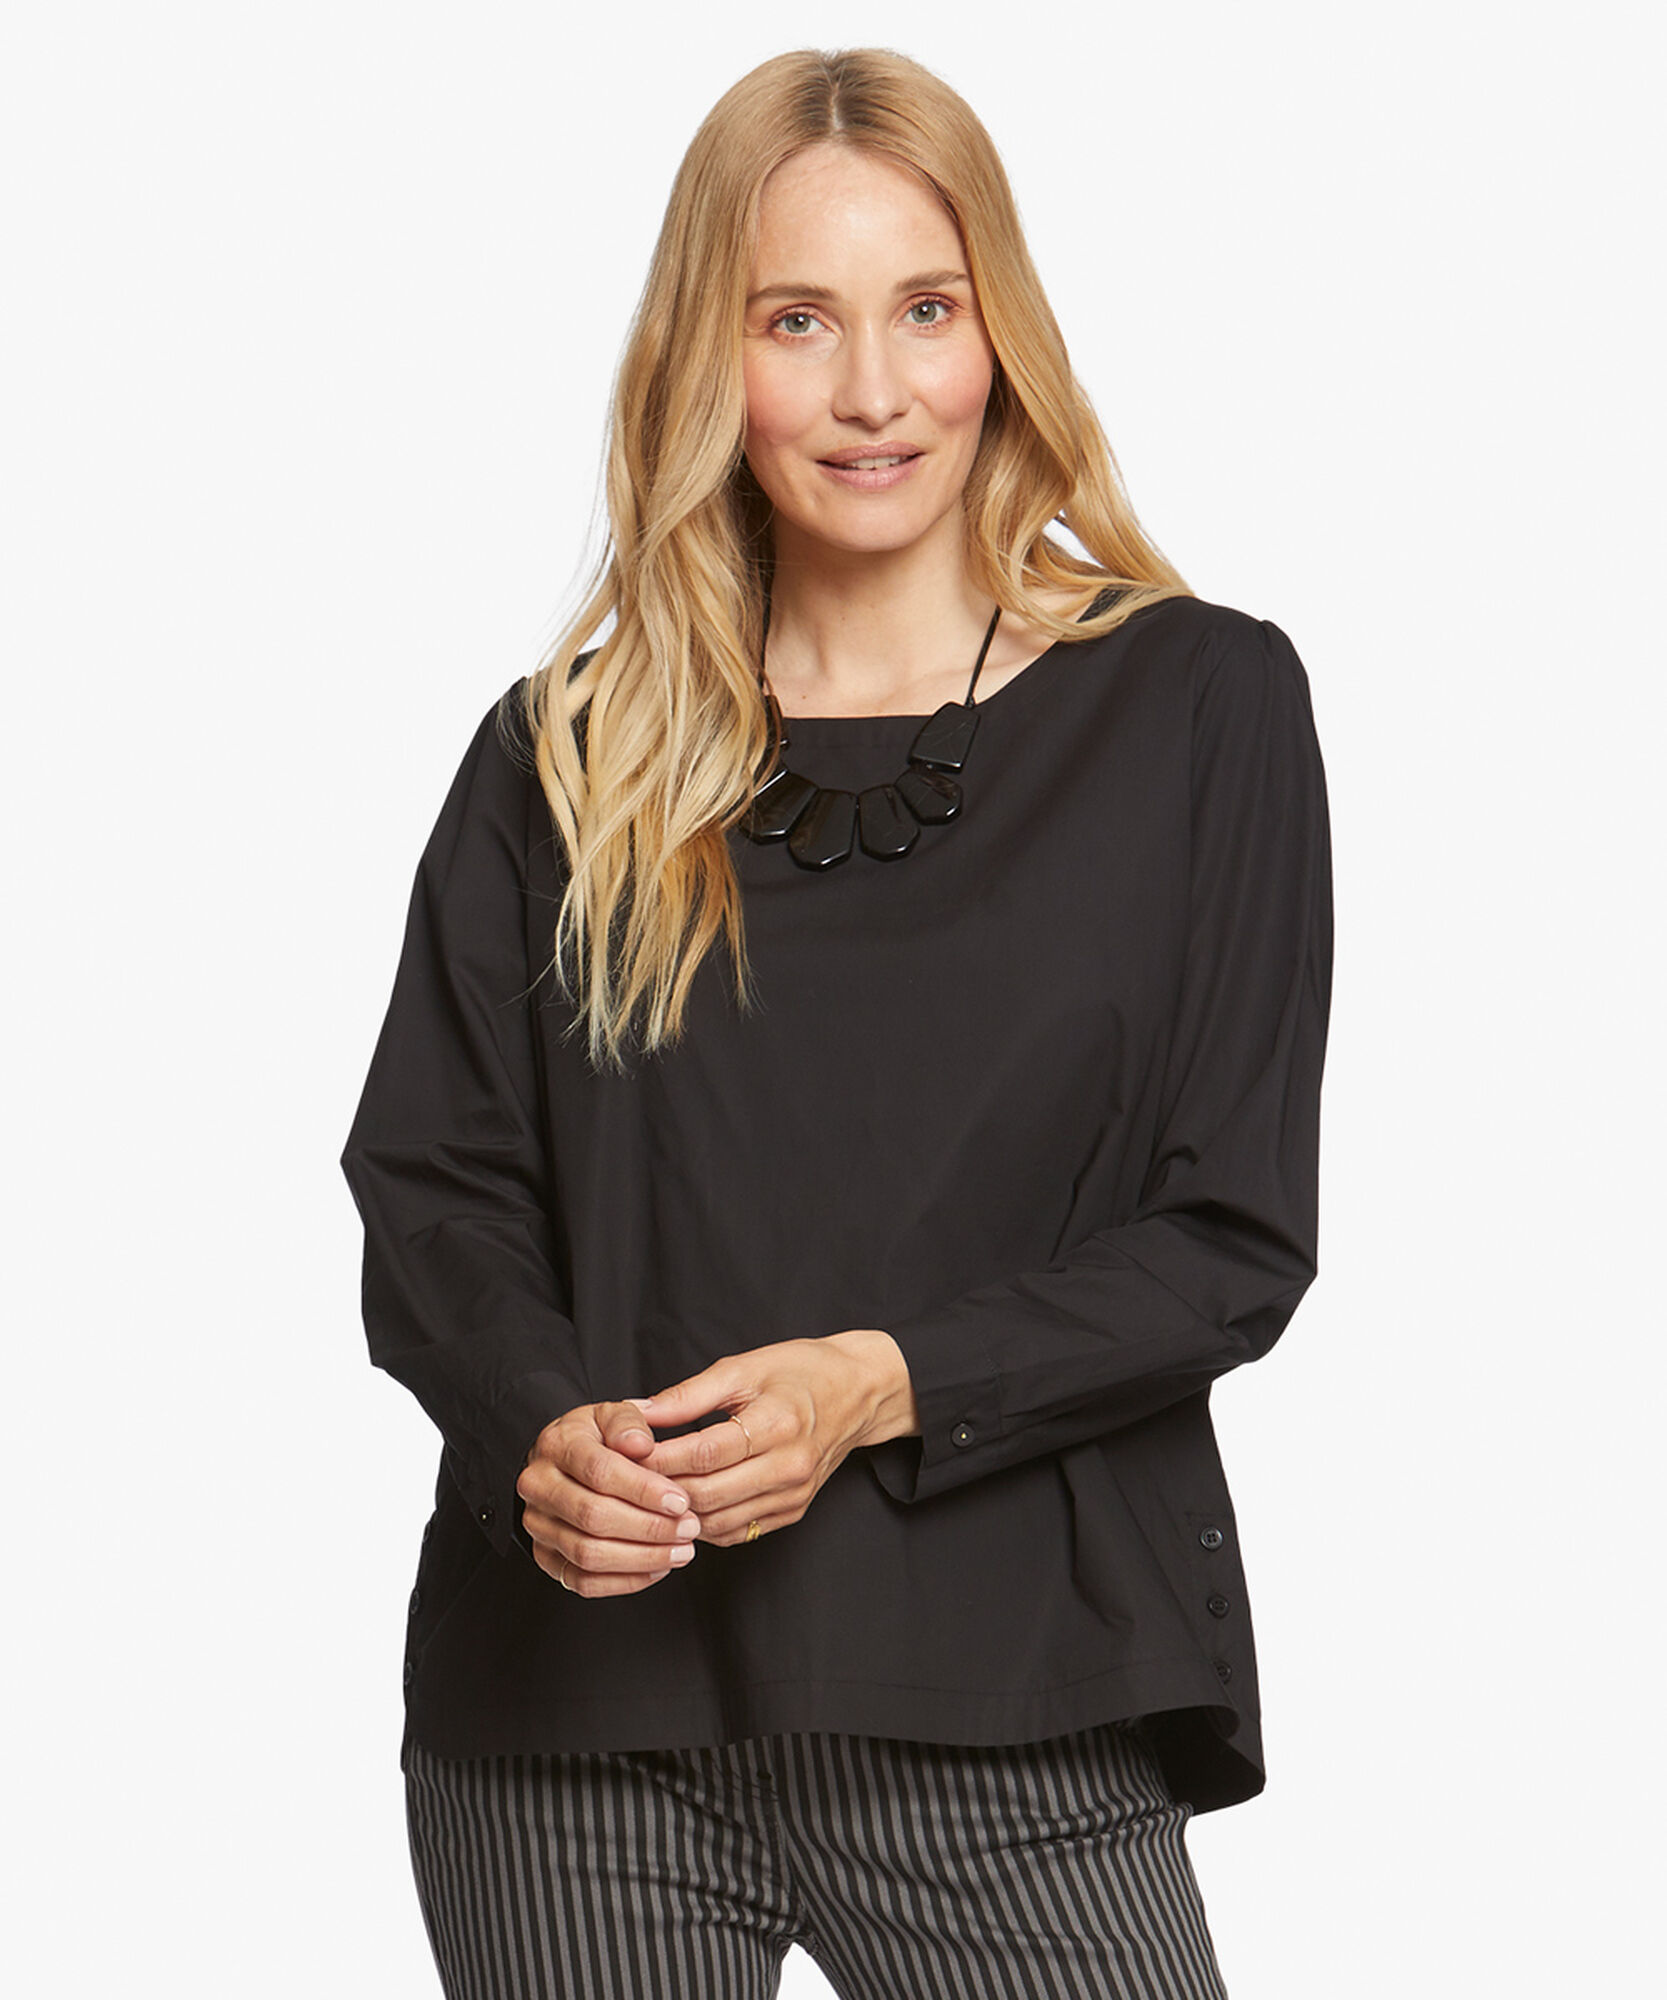 BEBBE TOP, Black, hi-res